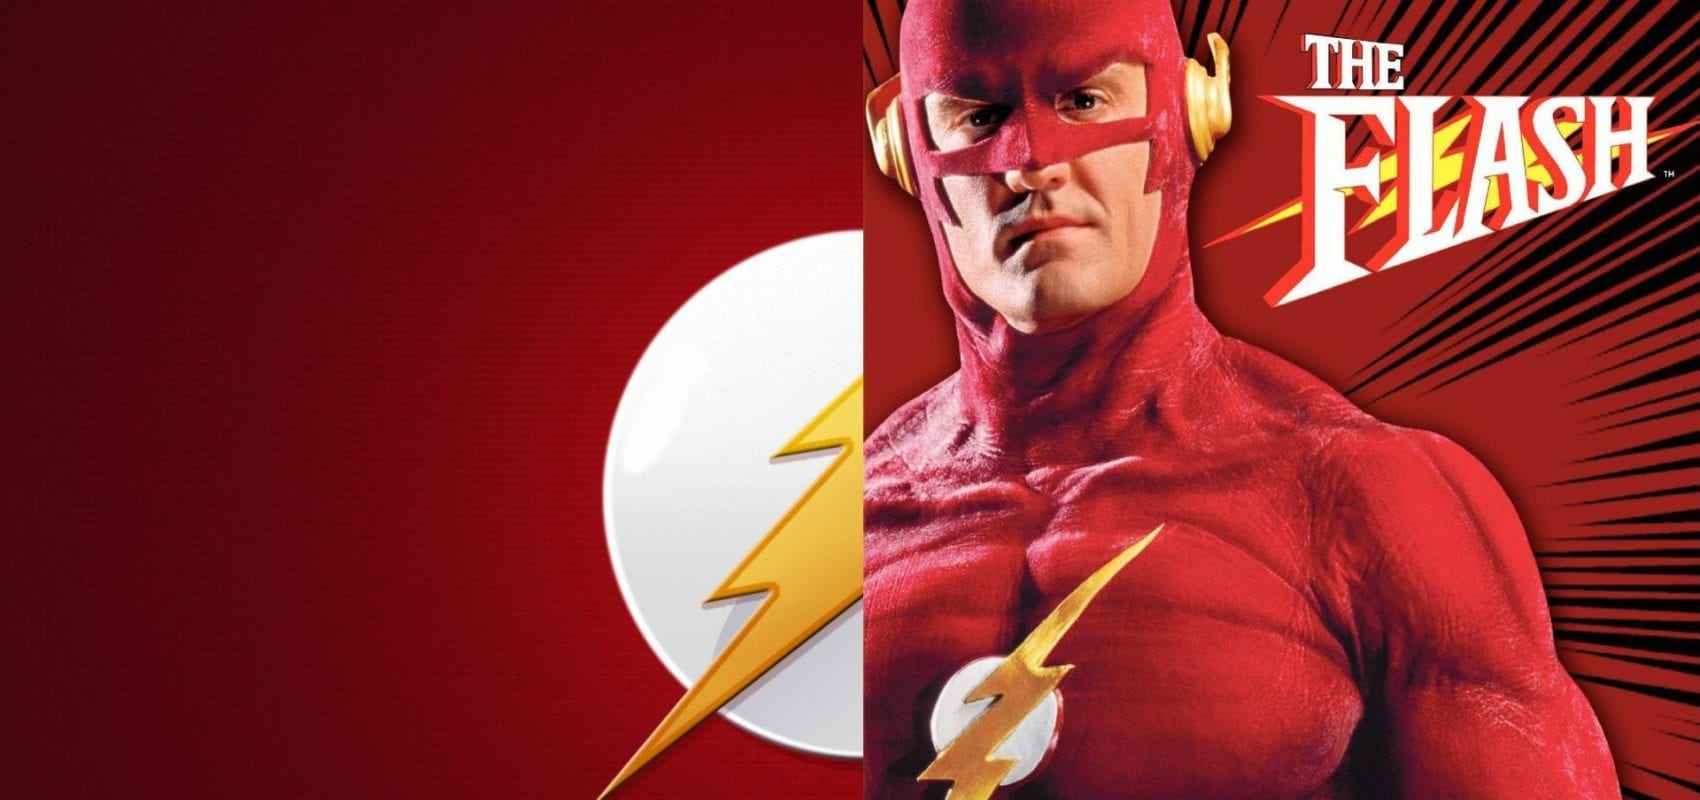 The Flash S02E23 Review My Geek Actu 1